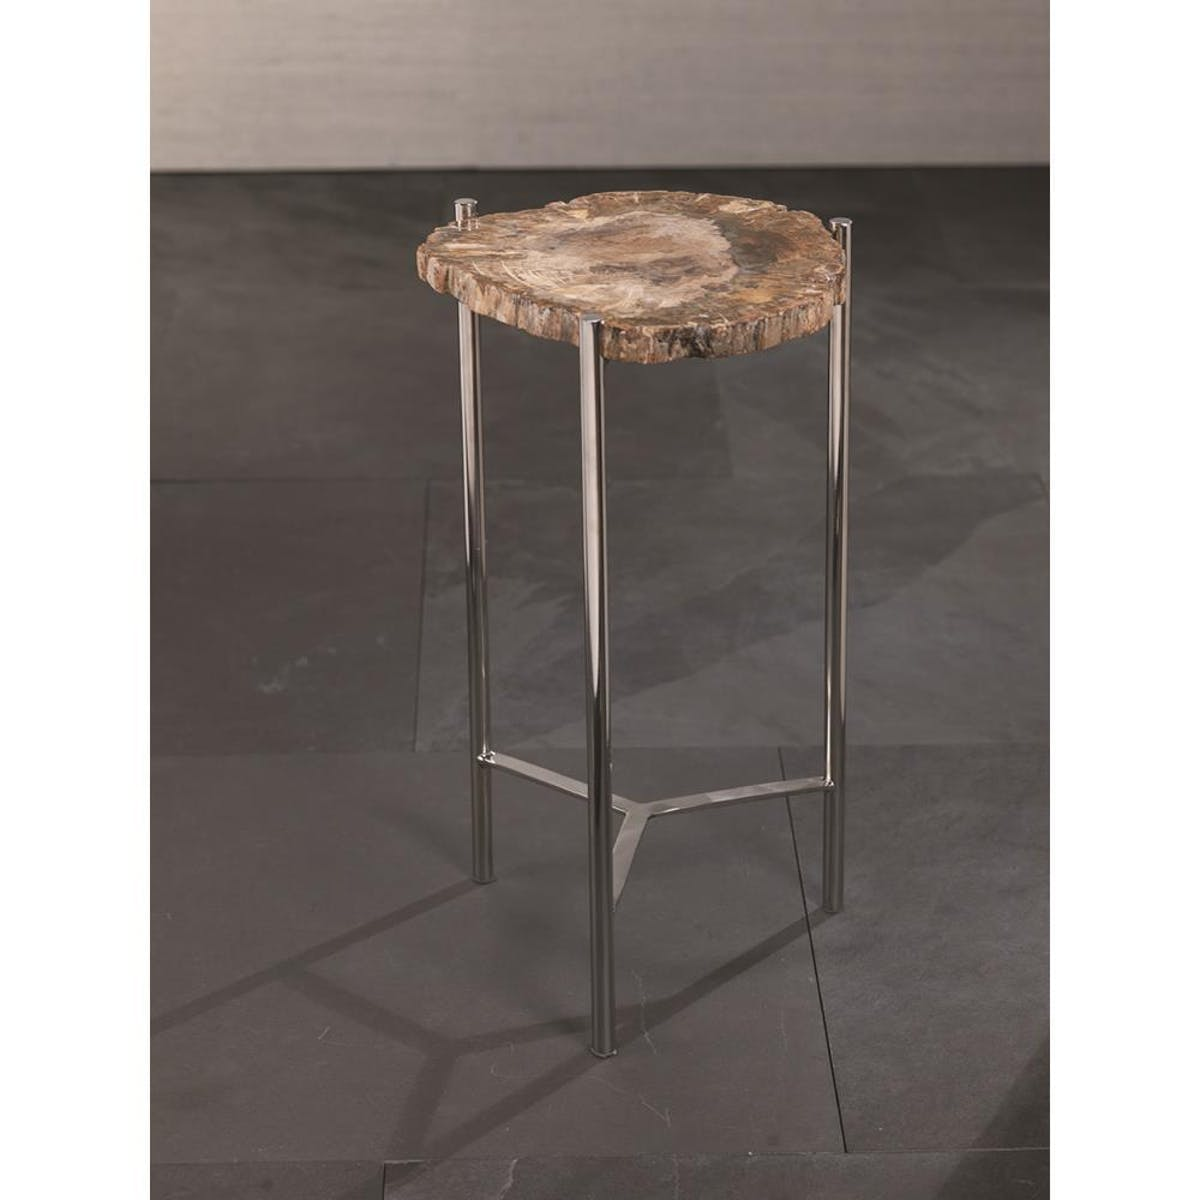 zodax pierce petrified wood accent table inch tall modish natural tap expand dining room round linen tablecloth silver leaf coffee west elm white console black and gold